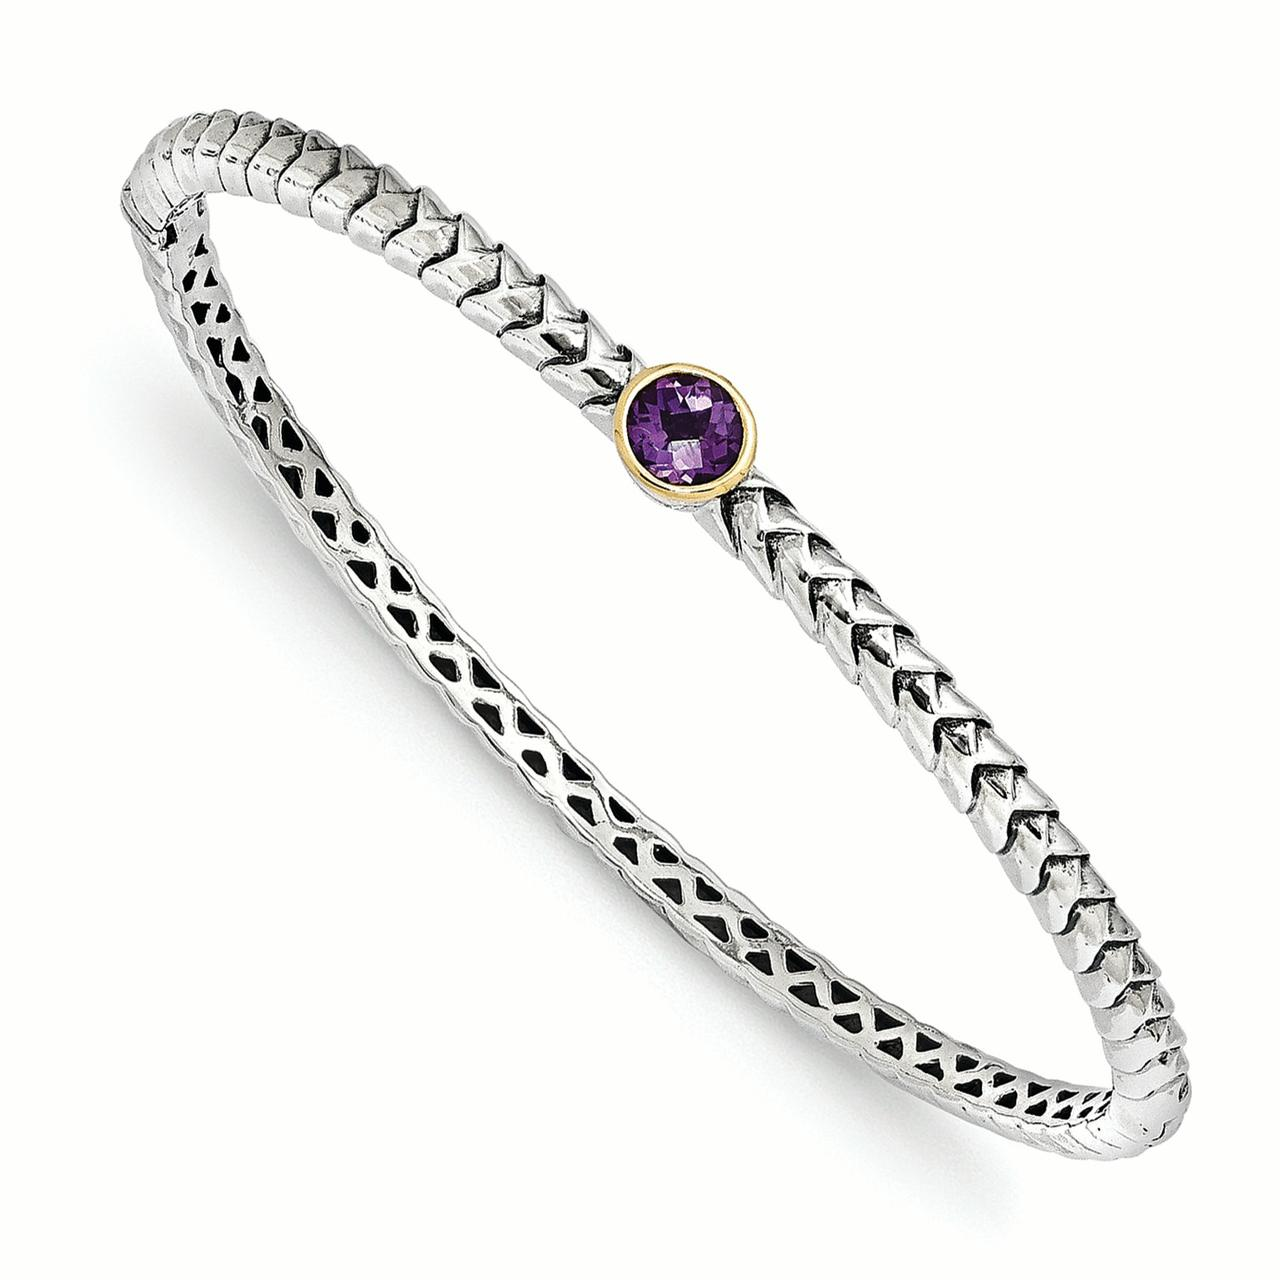 Sterling Silver w 14k Amethyst Bangle Bracelet QTC946 by Shey Couture